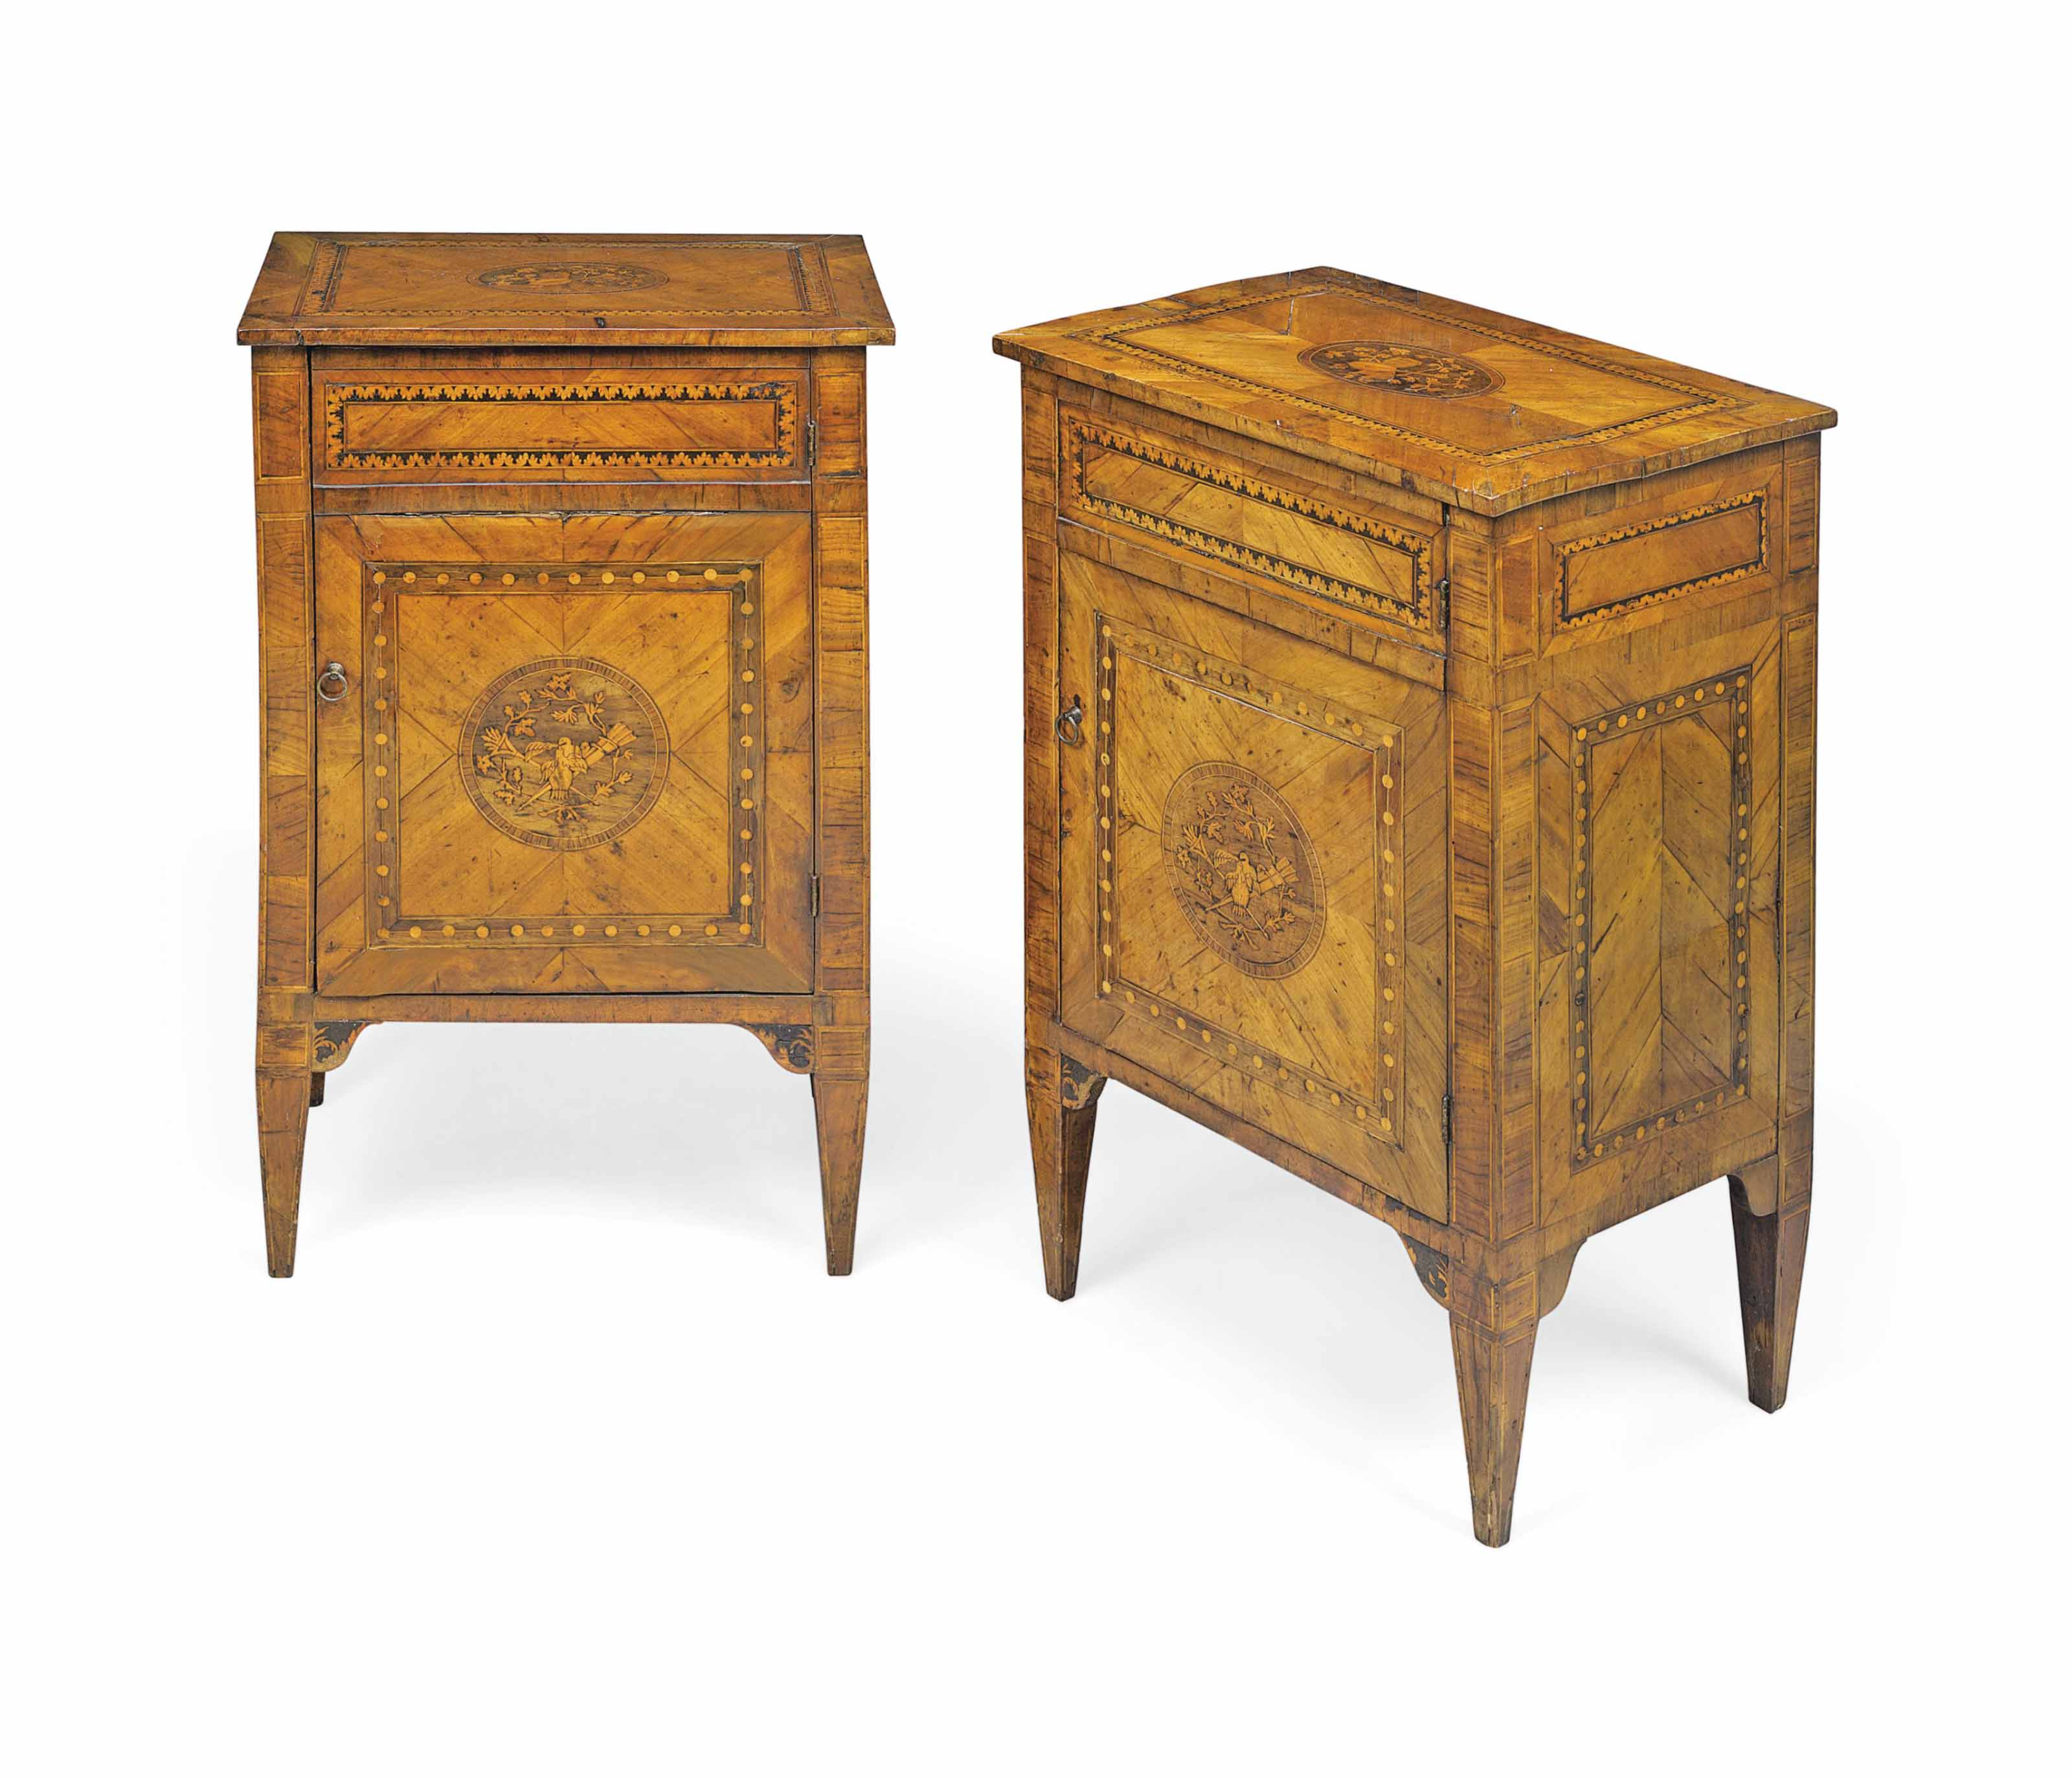 A PAIR OF NORTH ITALIAN WALNUT AND MARQUETRY COMODINI